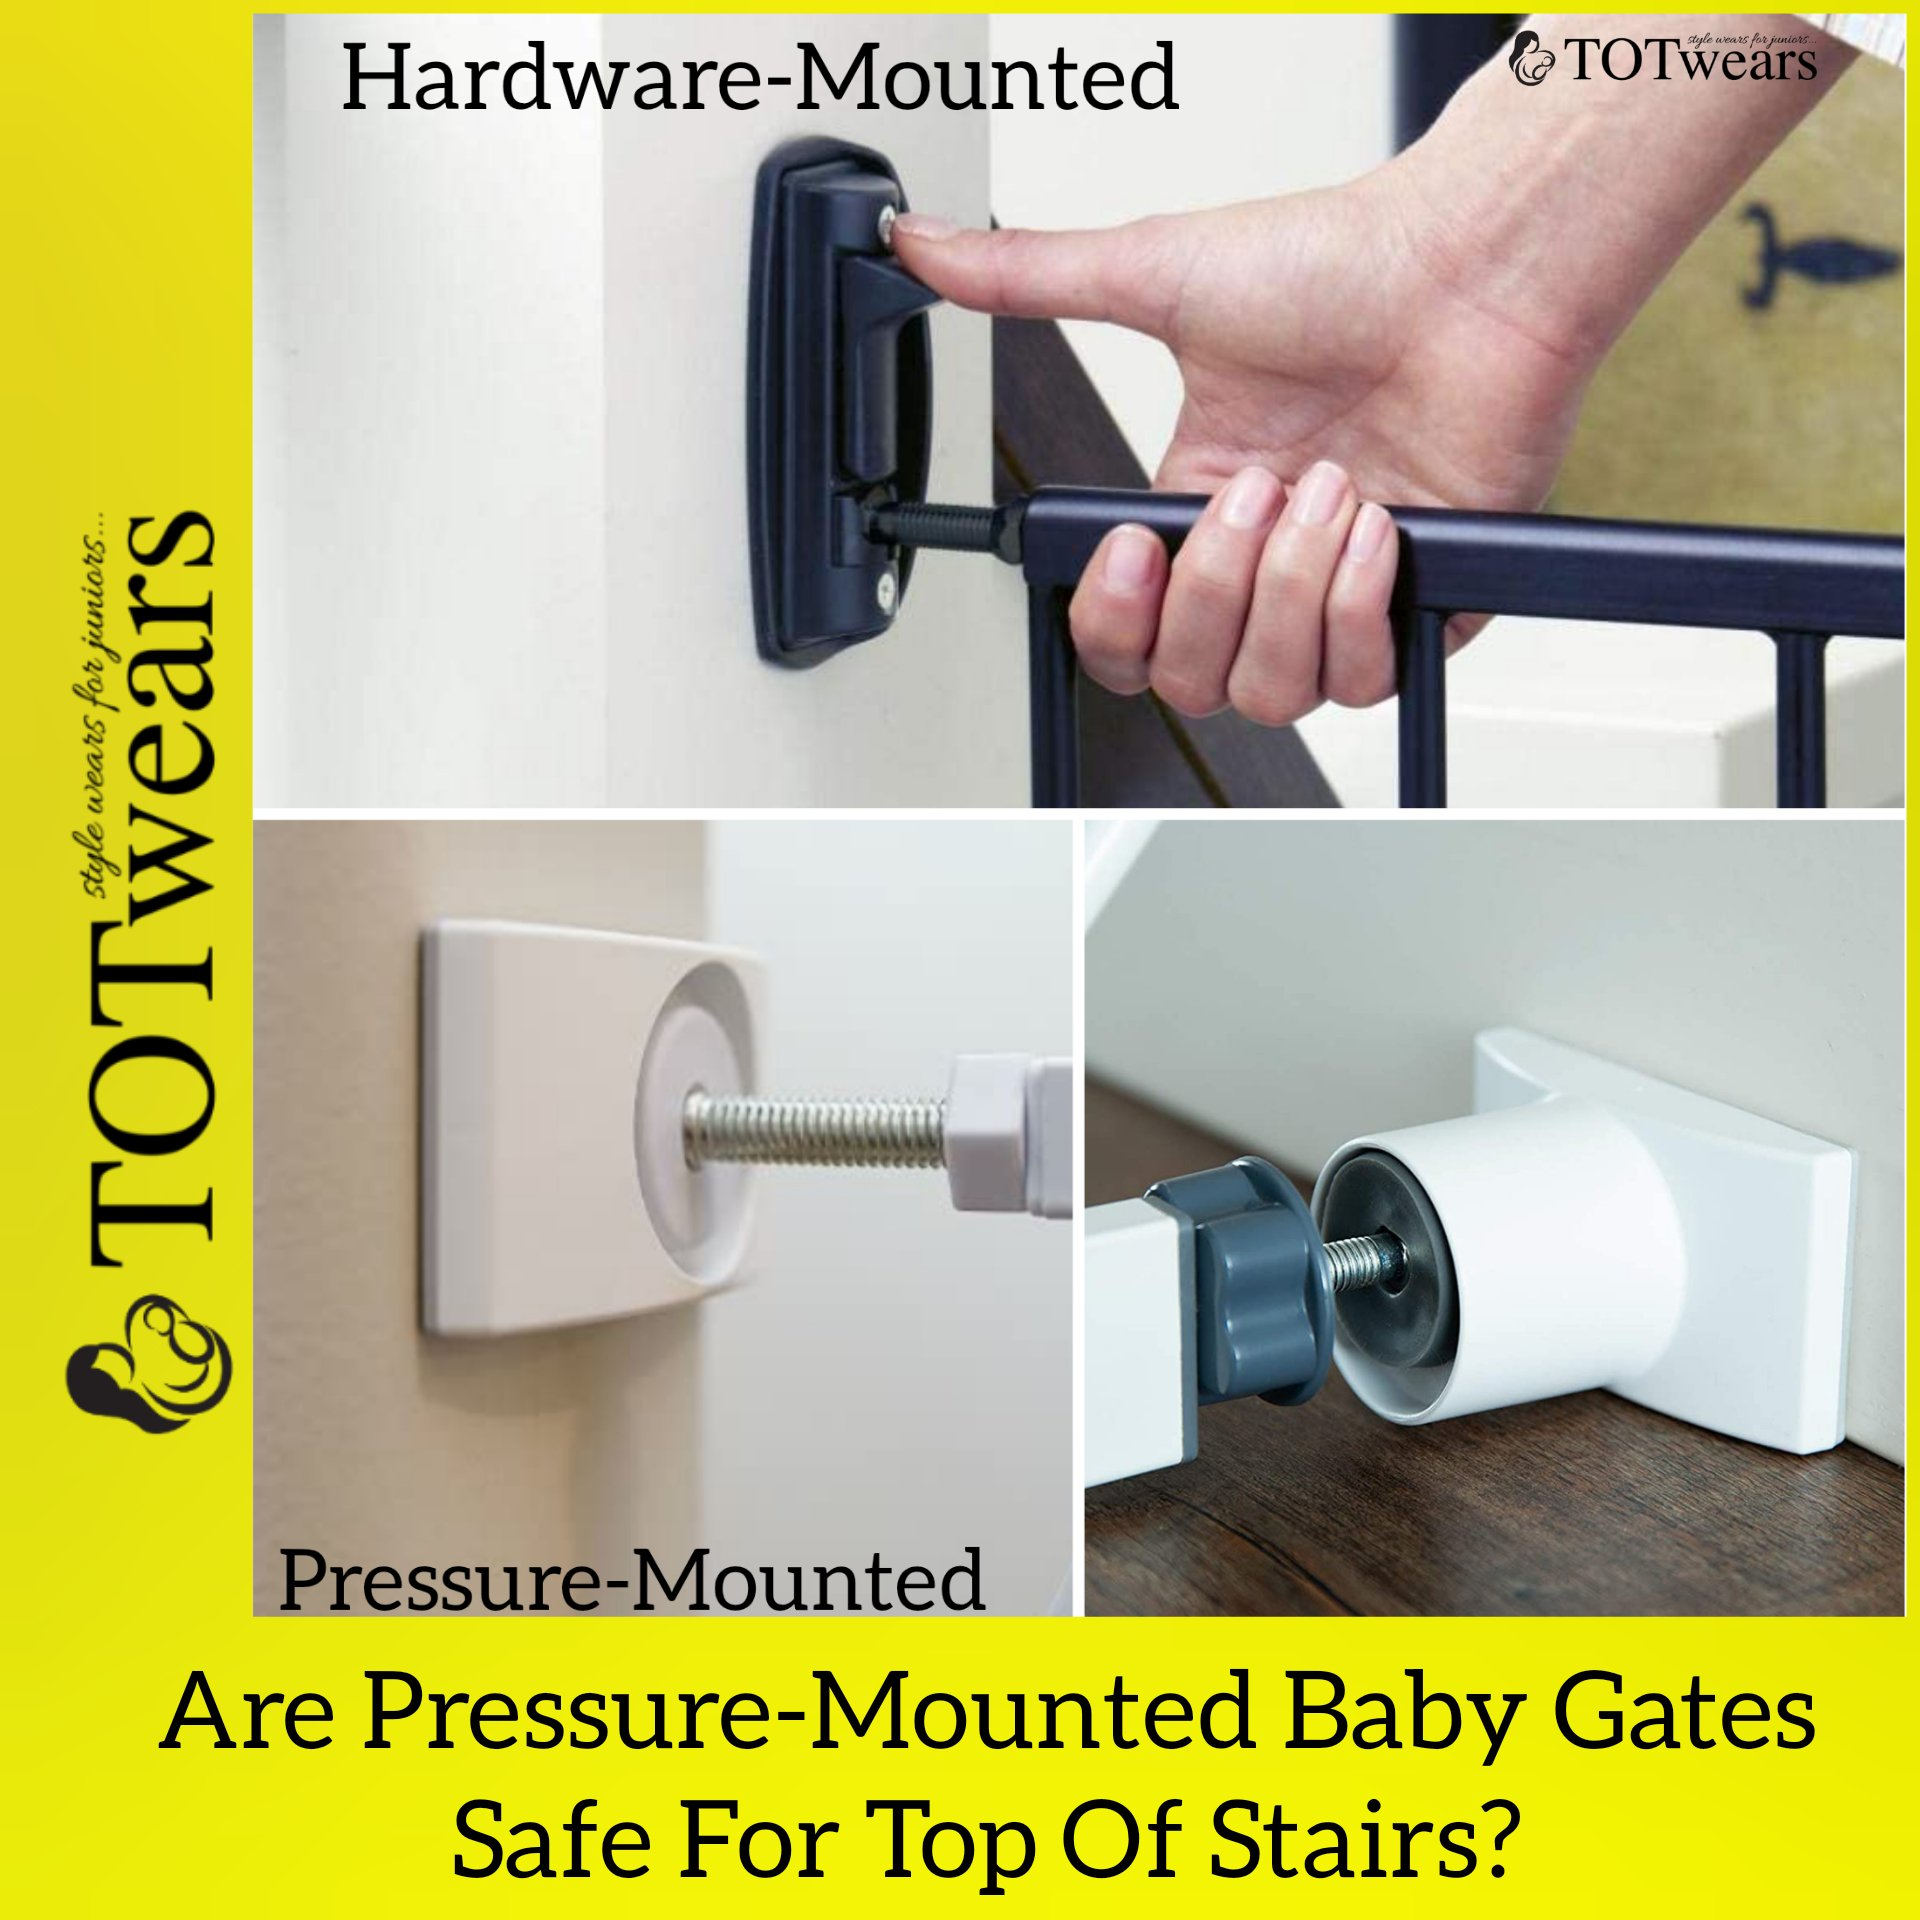 FAQ - Can You Use Pressure Mounted Gate Top Stairs?